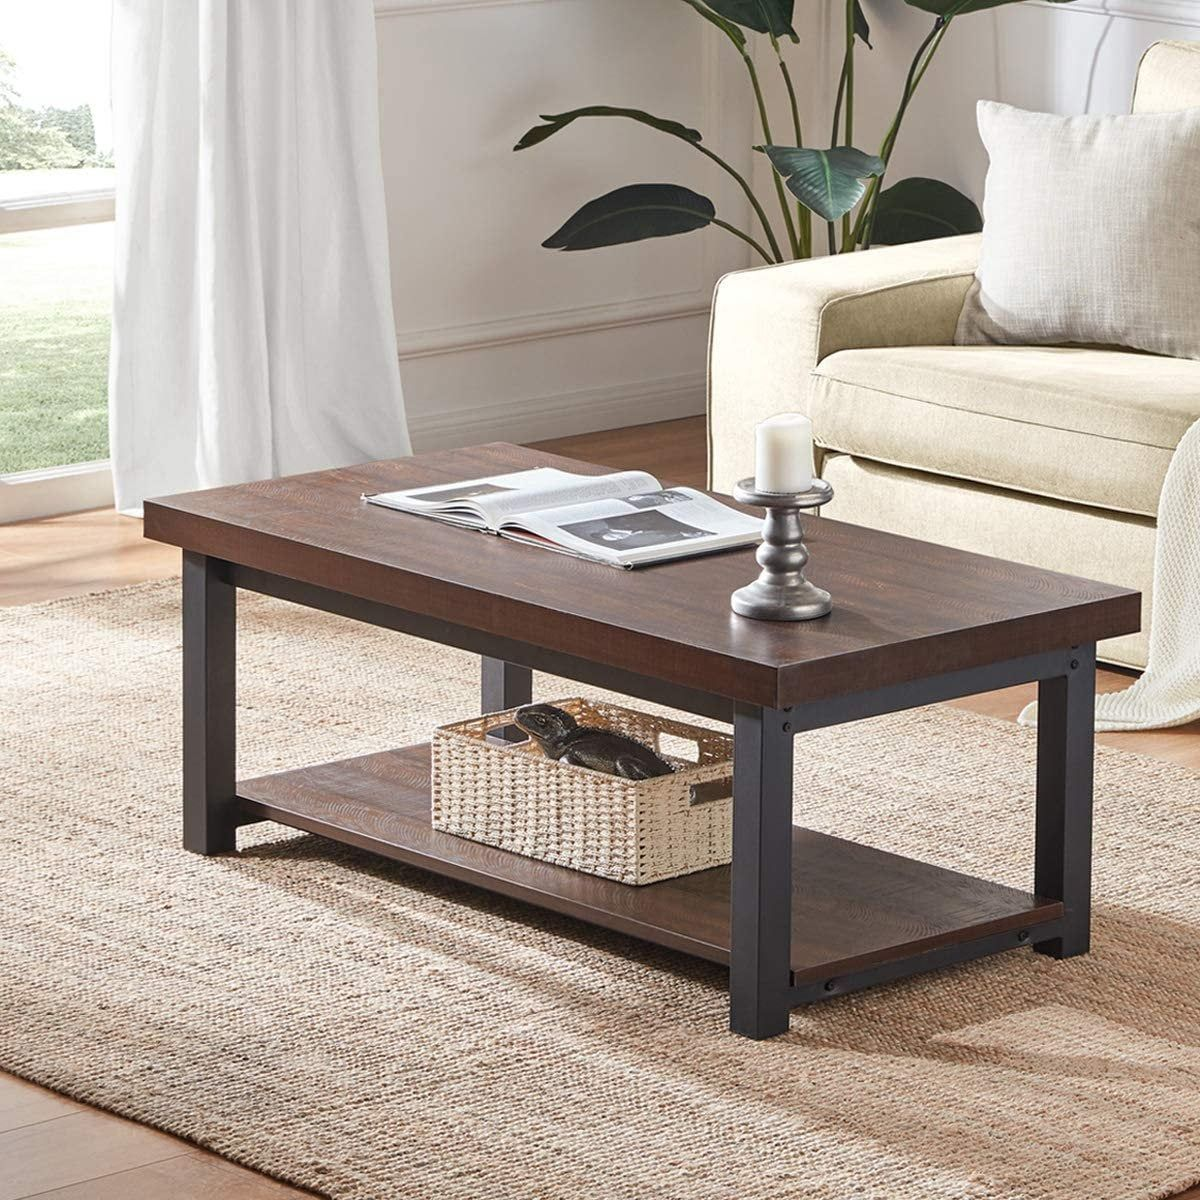 Rustic Wood And Metal Cocktail Table With Shelf 47 Inch Etsy In 2021 Coffee Table Metal Cocktail Table Living Room Side Table [ 1200 x 1200 Pixel ]